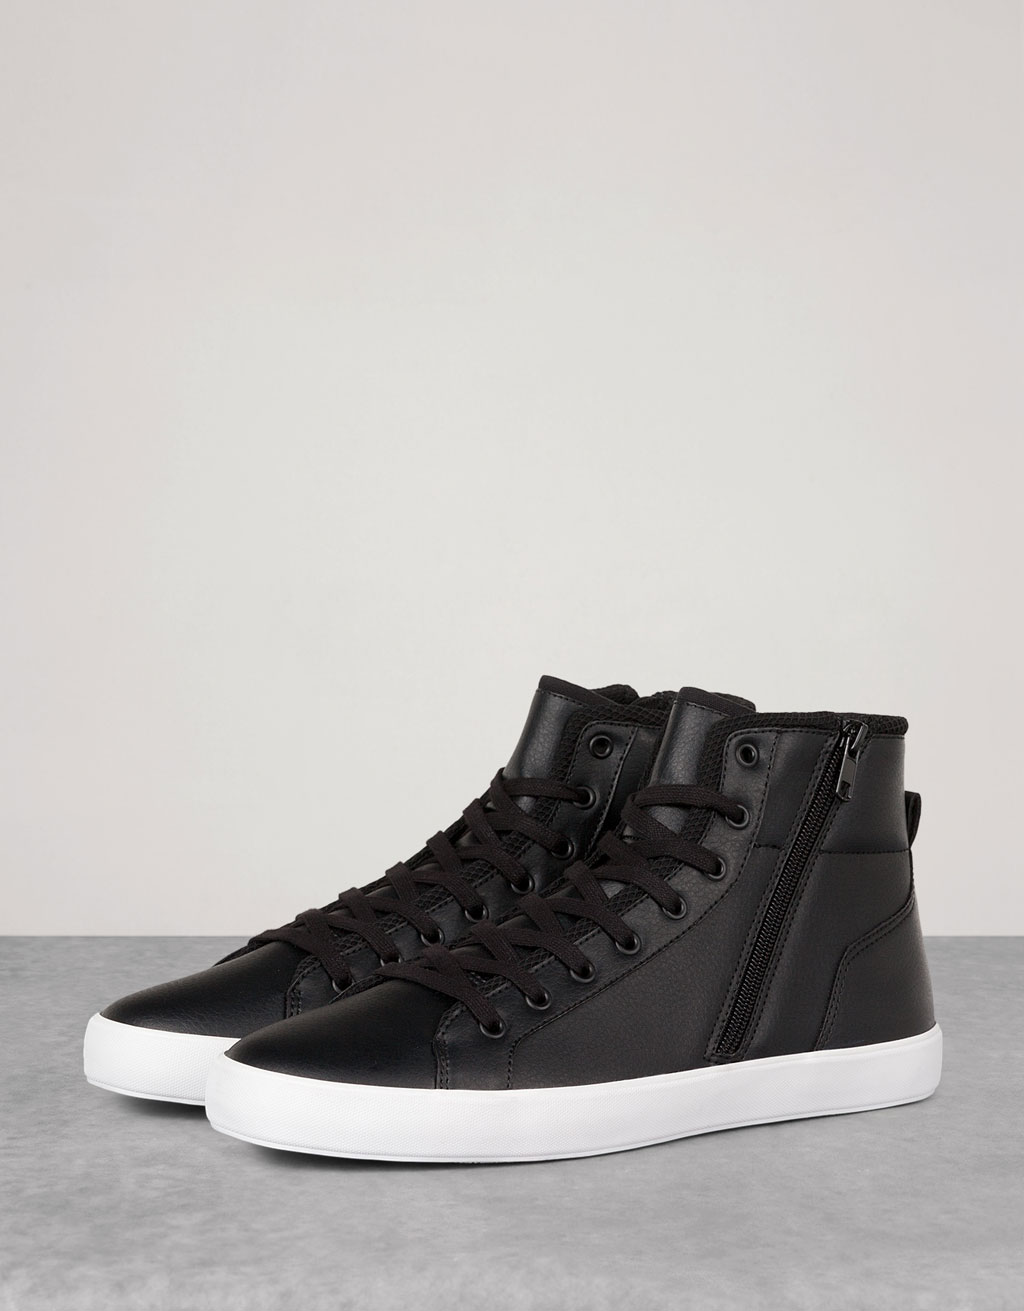 Men's zipper high tops